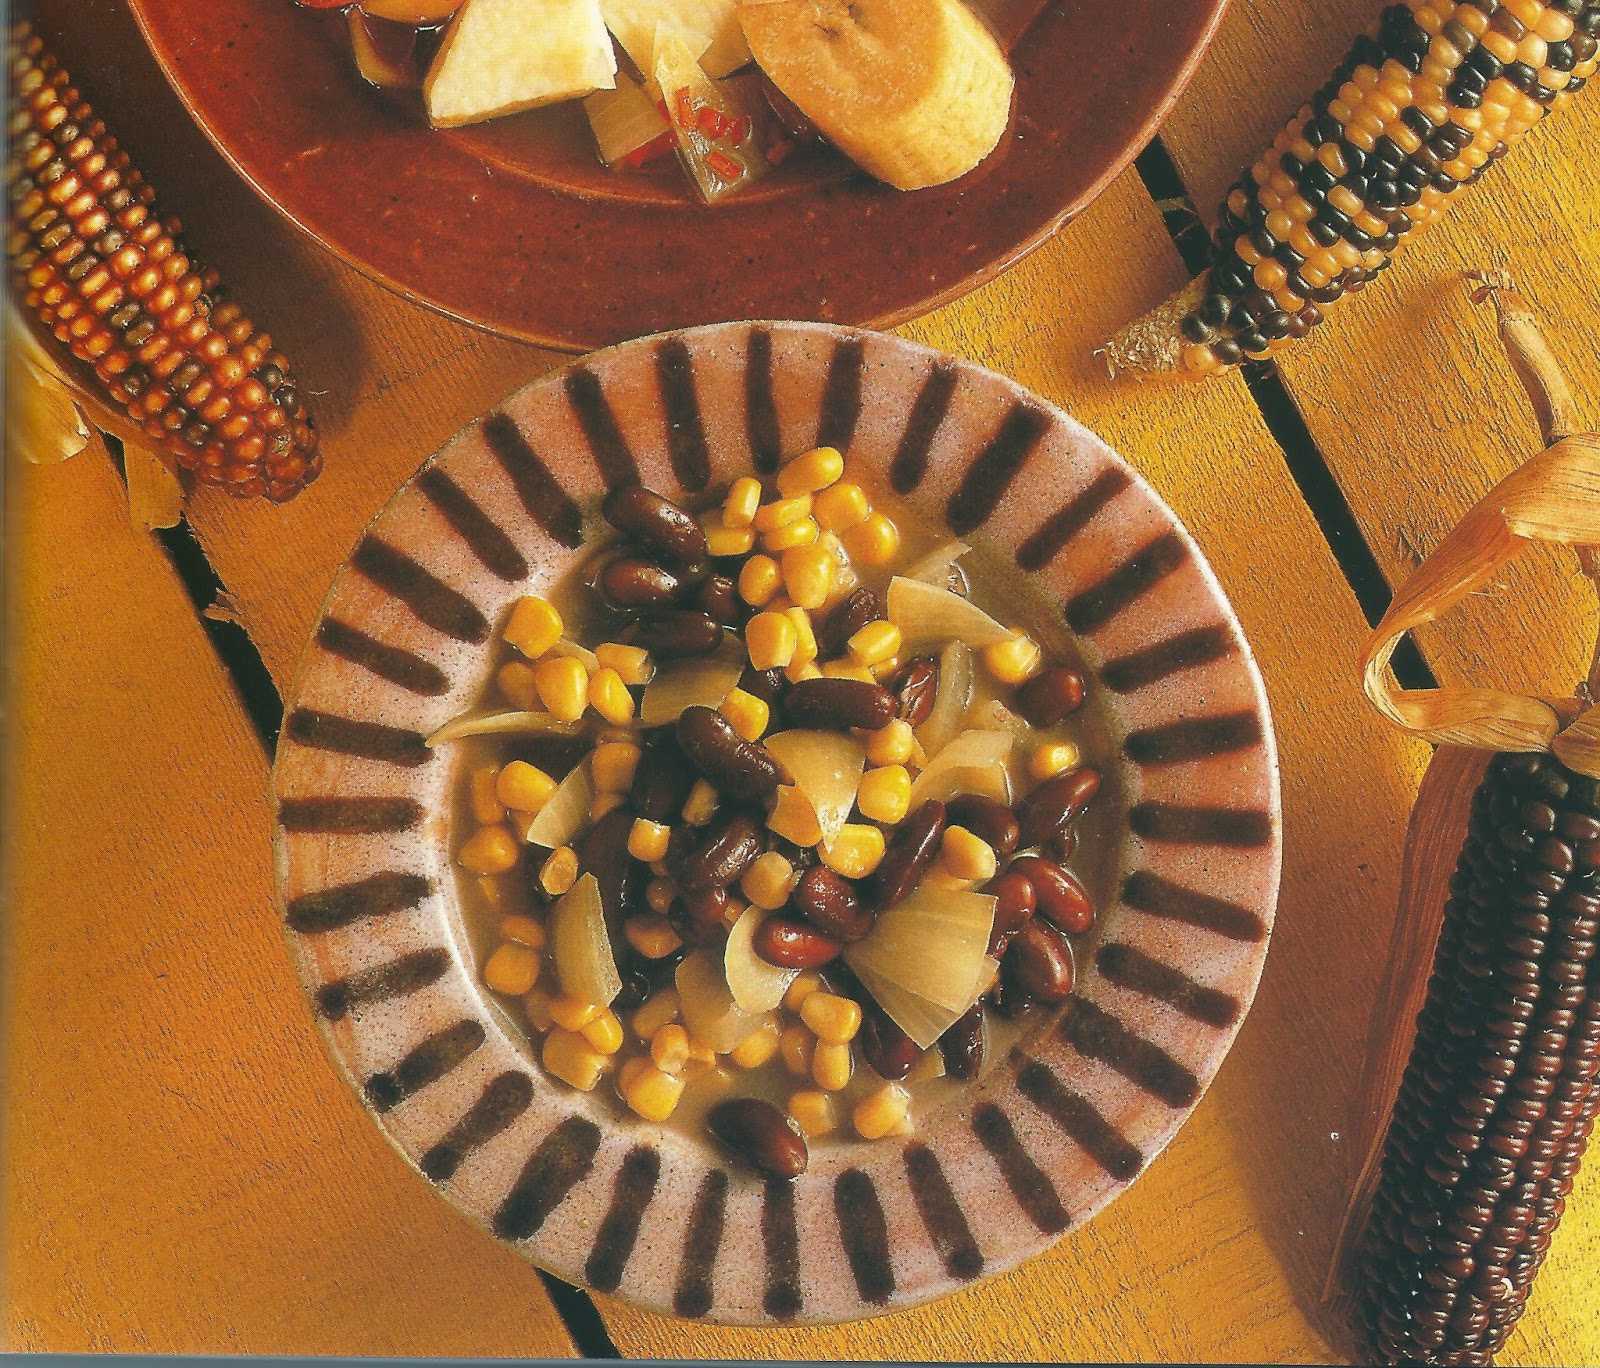 Coping badly recipe quick cook tanzanian makande sweetcorn according to the recipe book this is from the african middle eastern cookbook josephine bacon and jenni fleetwood which is where i got the picture solutioingenieria Choice Image